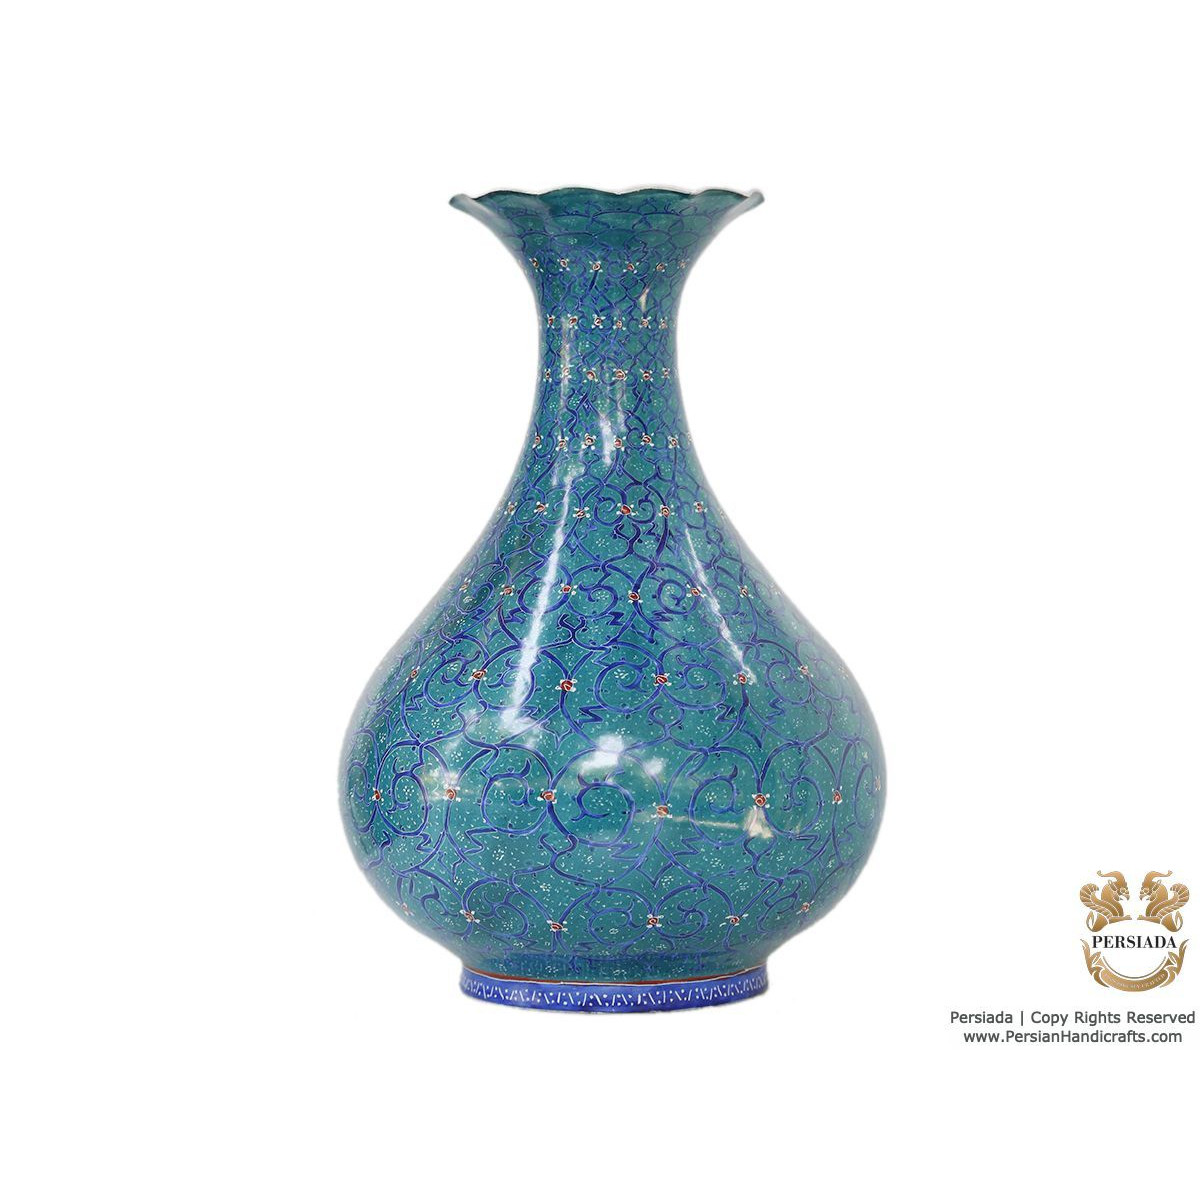 Decorative Flower Vase - Enamel Minakari | PE4115-Persian Handicrafts